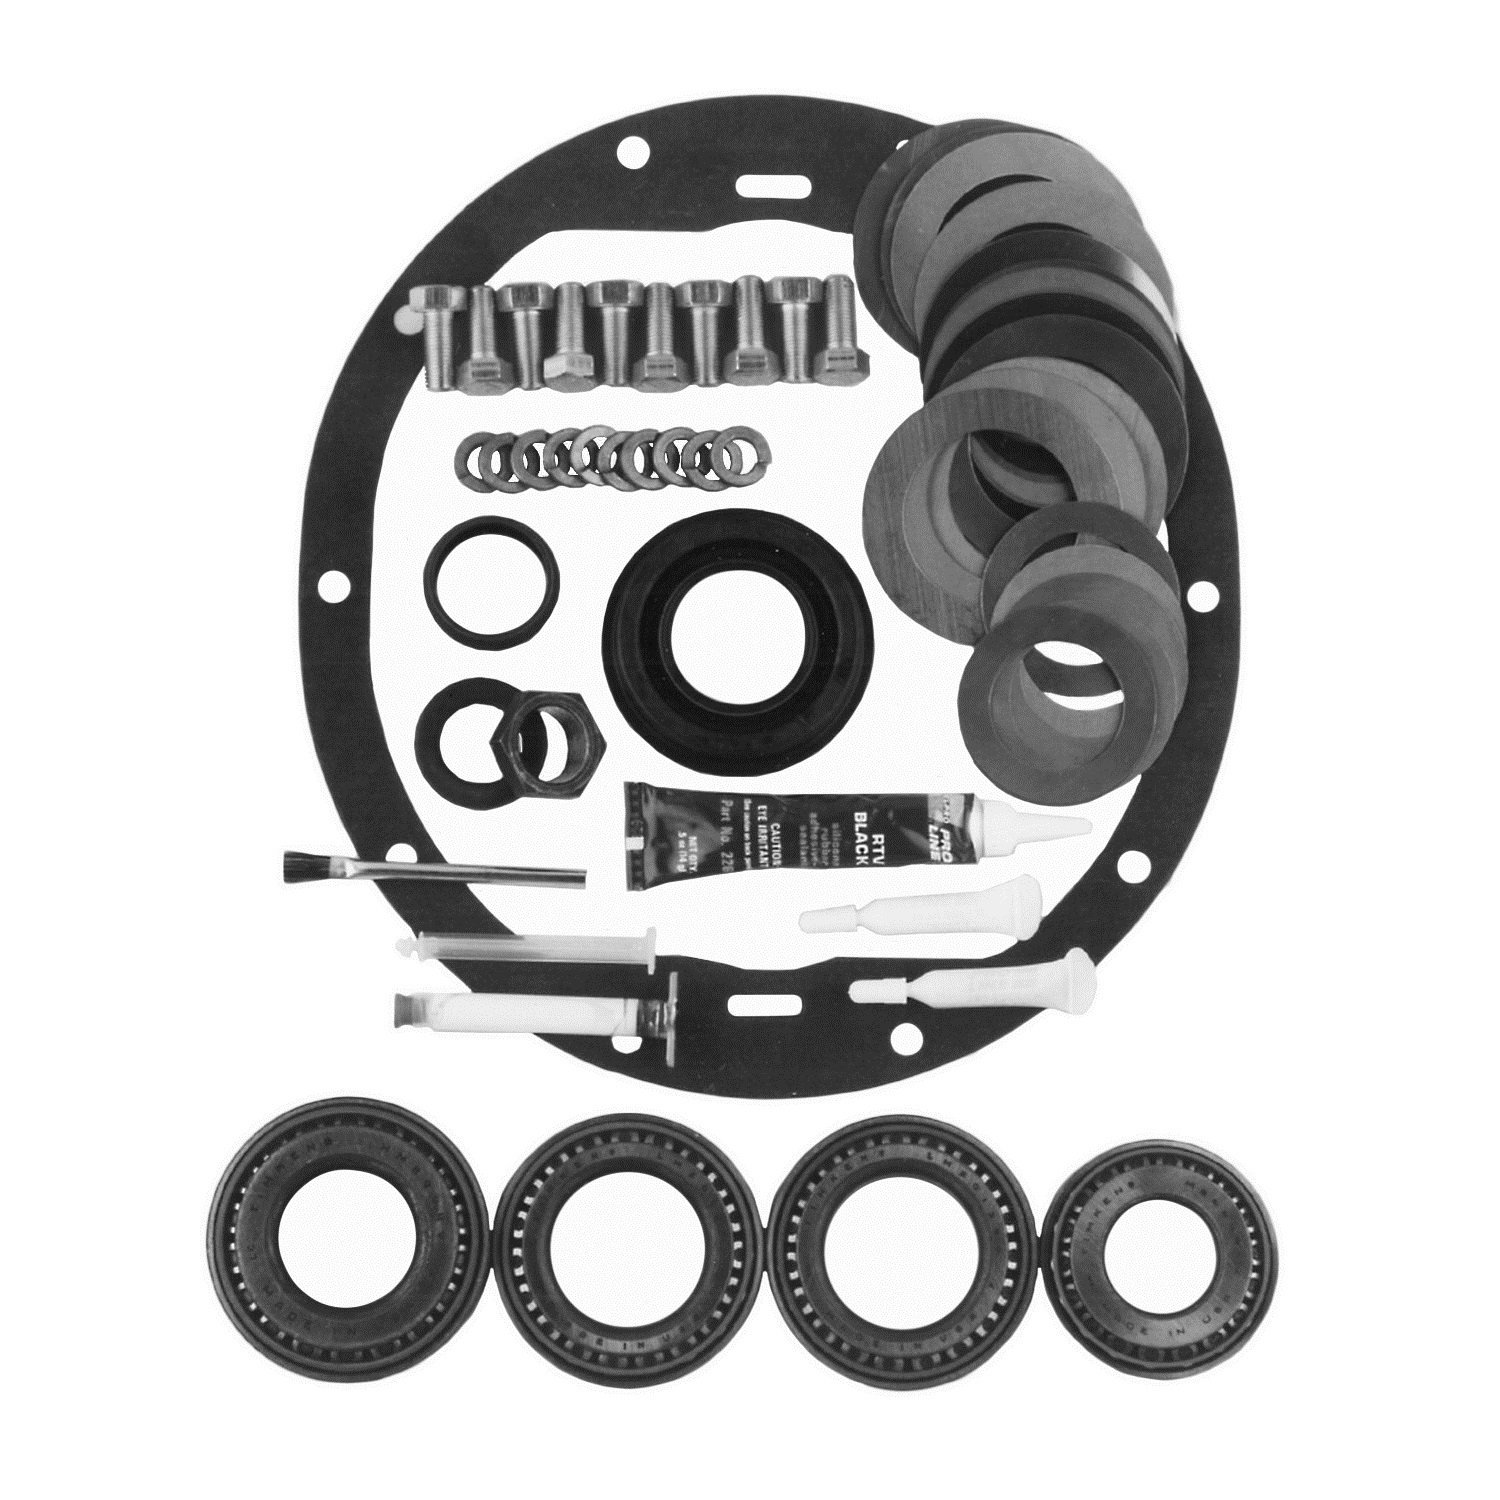 83-1022-M Richmond Install Kit